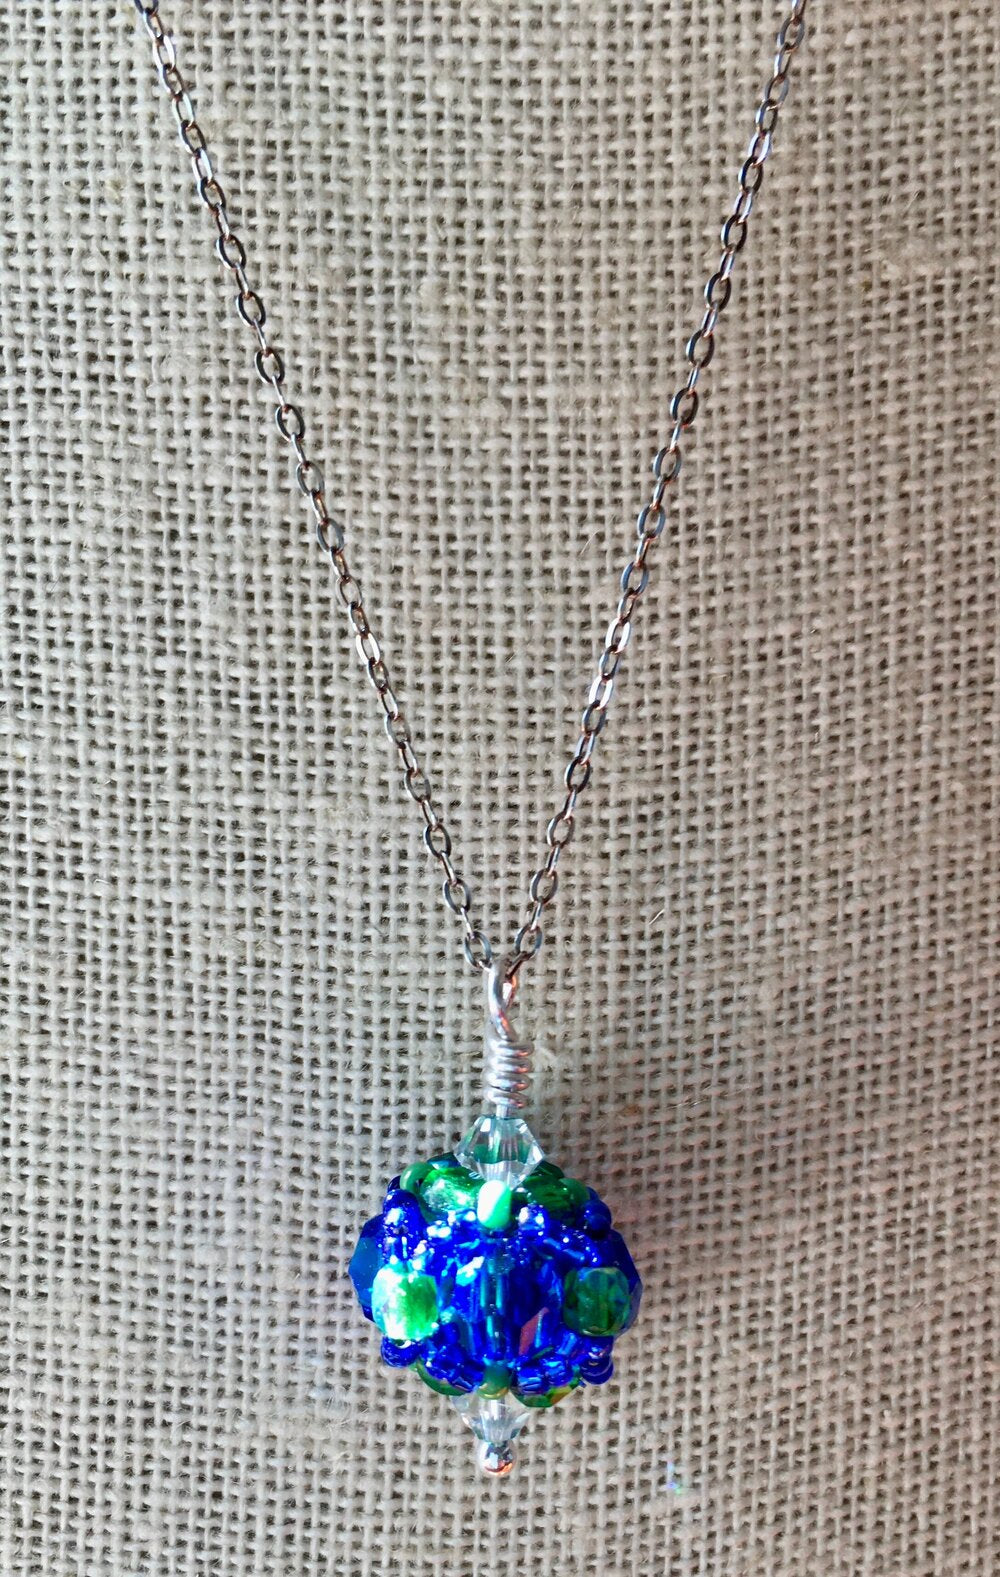 Williston Northampton School Gifts -- Handcrafted Crystal & Glass Proud of U. ™ Necklace